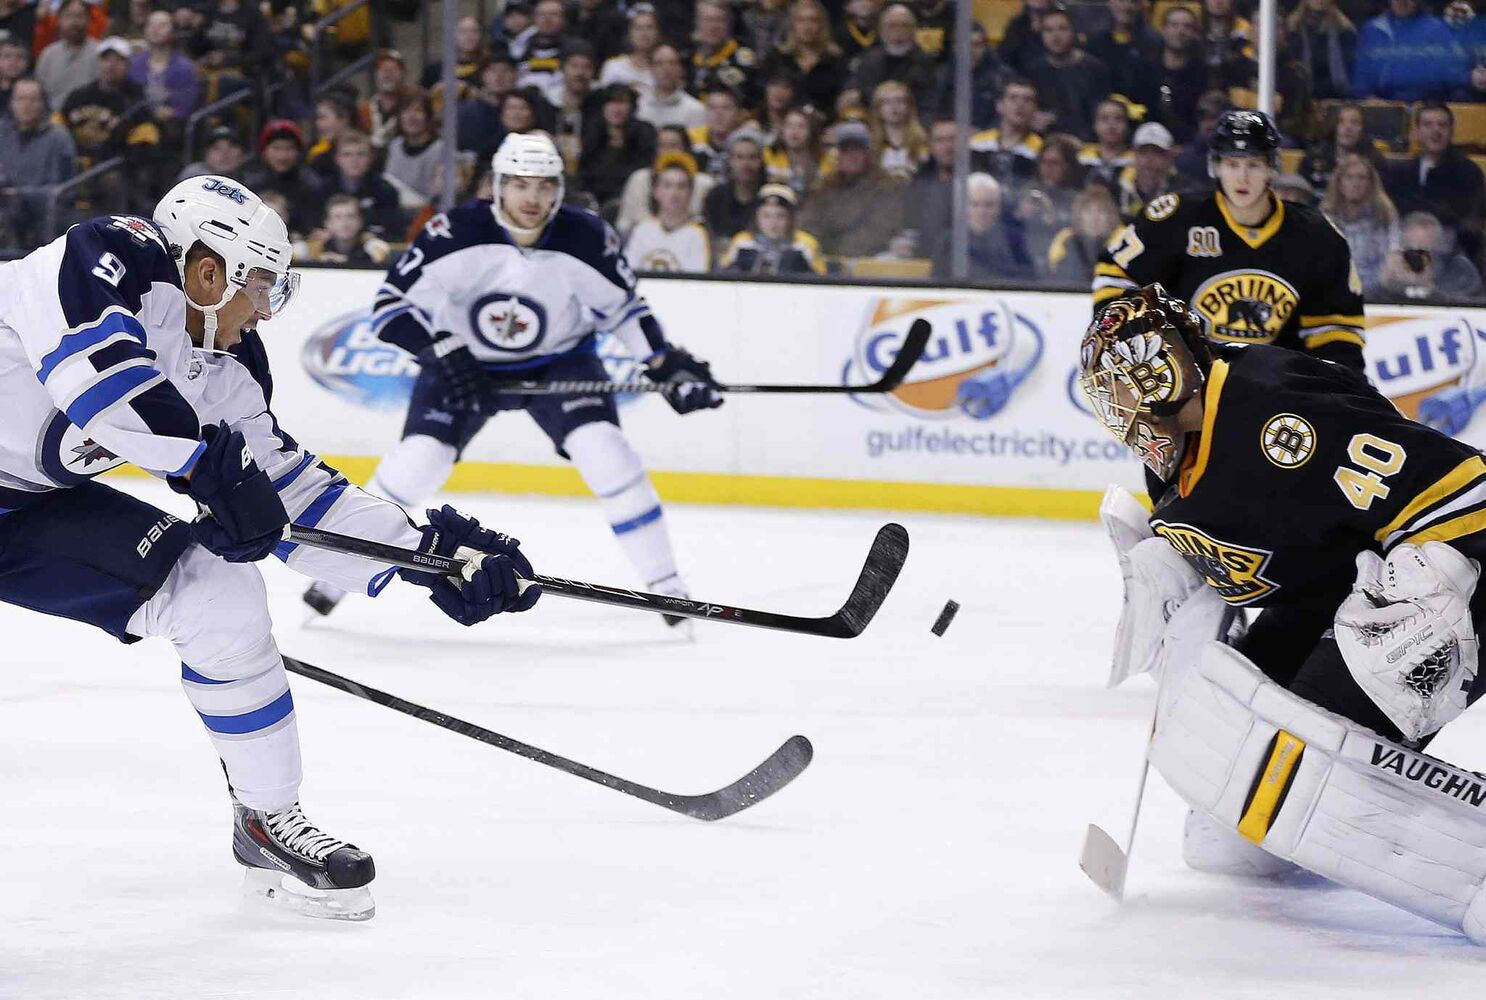 Winnipeg Jets' Evander Kane (9) takes a shot on Boston Bruins' Tuukka Rask (40) in the first period Saturday.